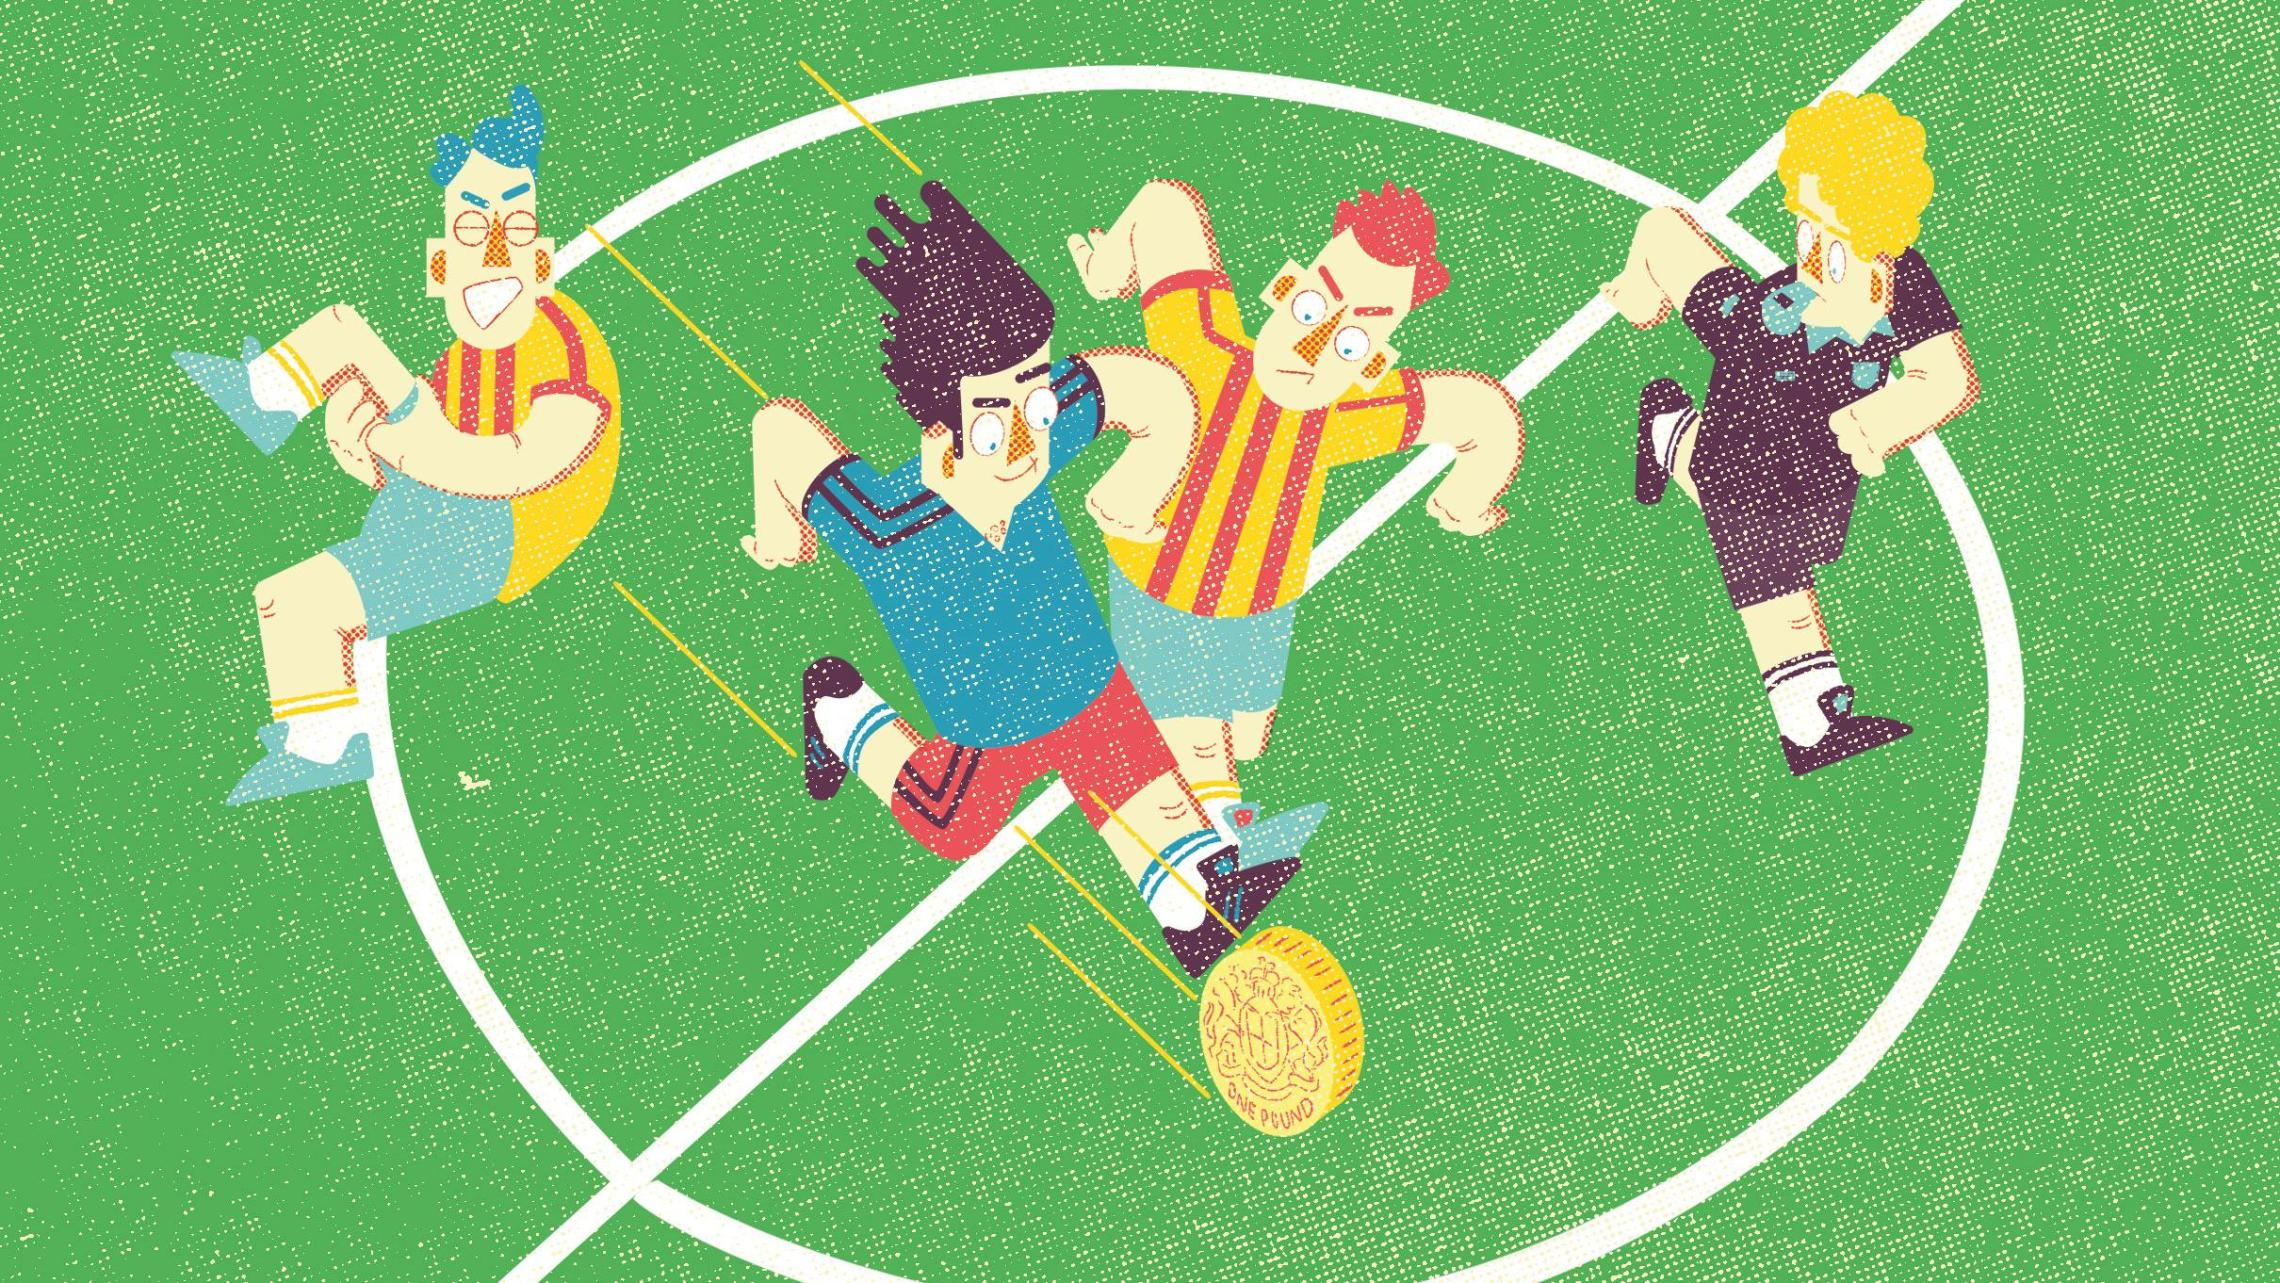 How I used maths to beat the bookies